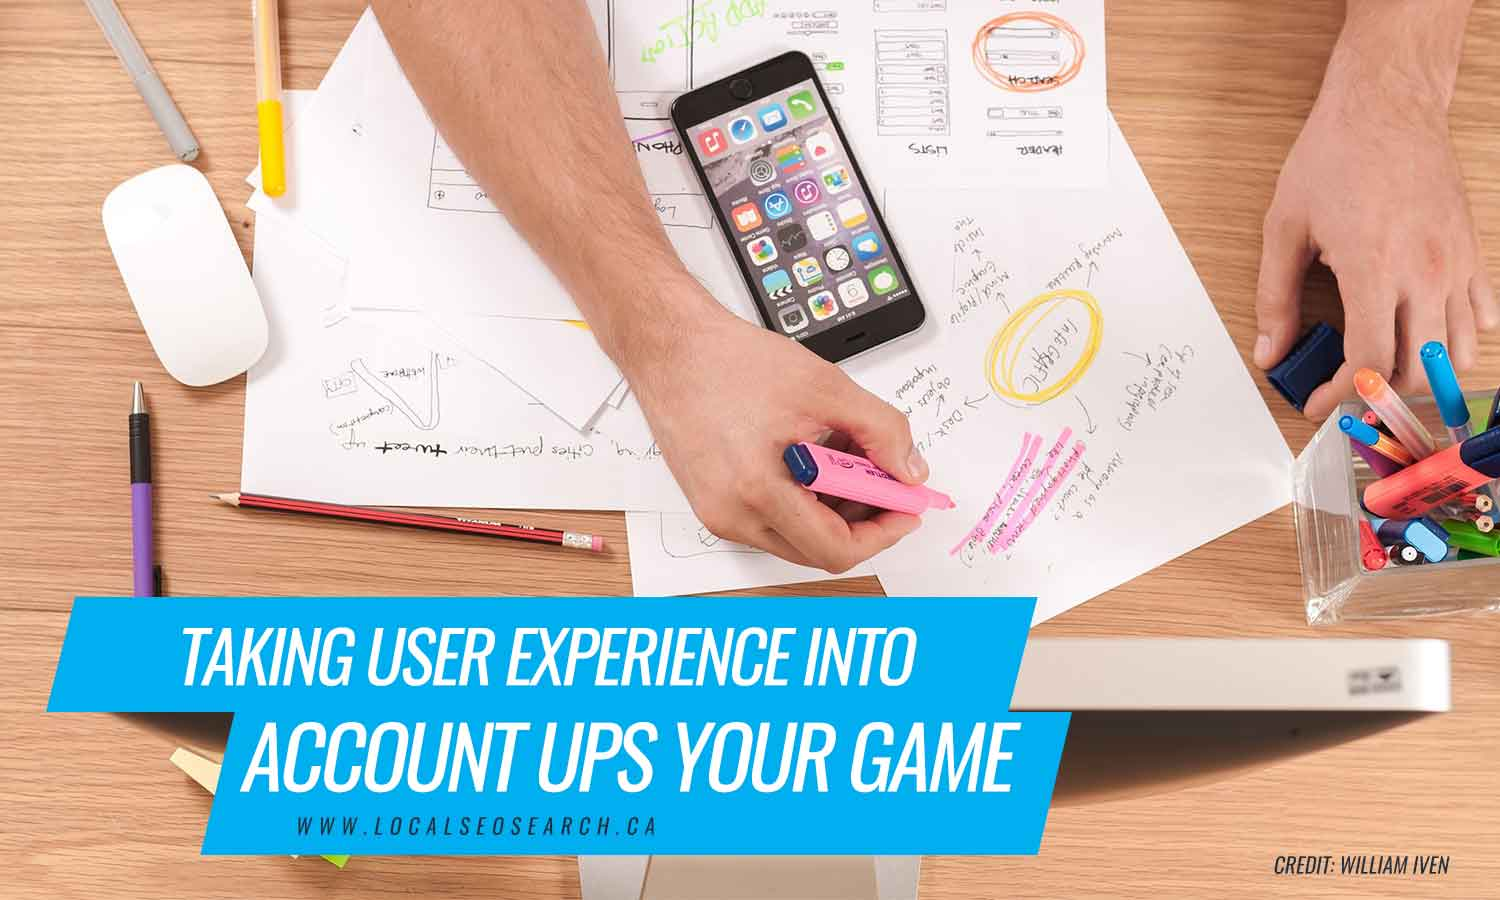 Taking user experience into account ups your game